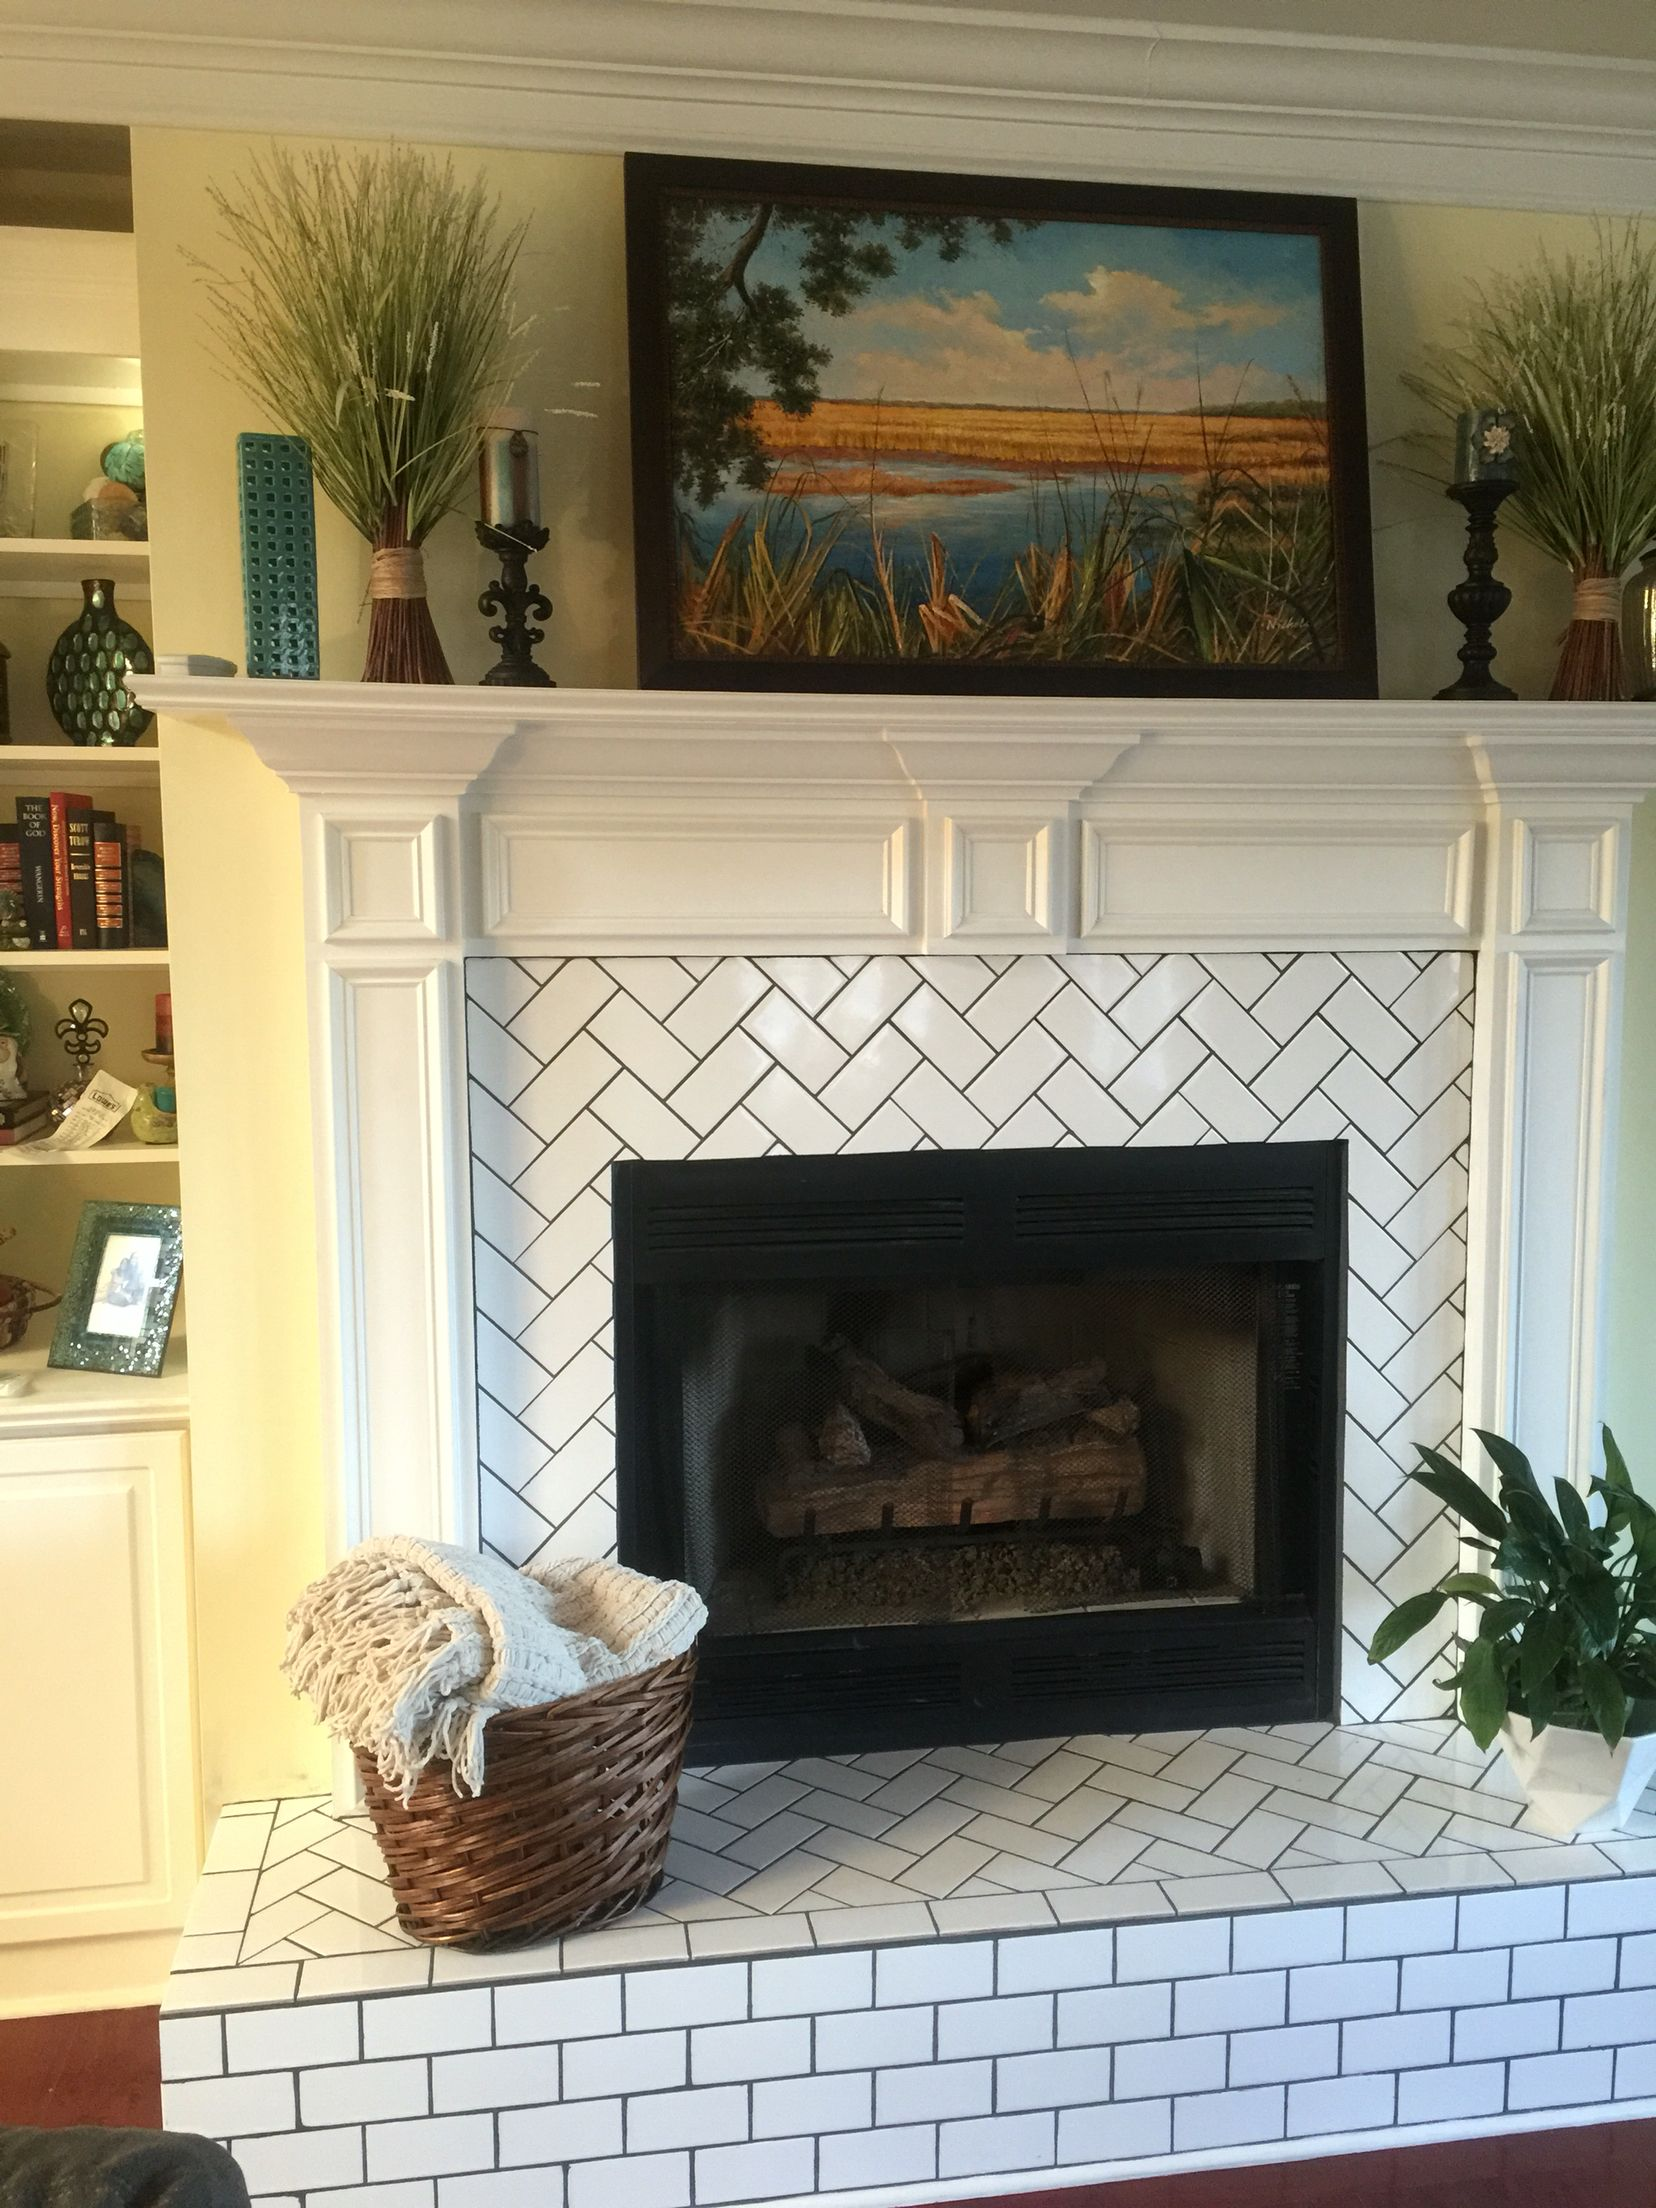 Herringbone Pattern Subway Tile Fireplace Hearth And Surround Update More